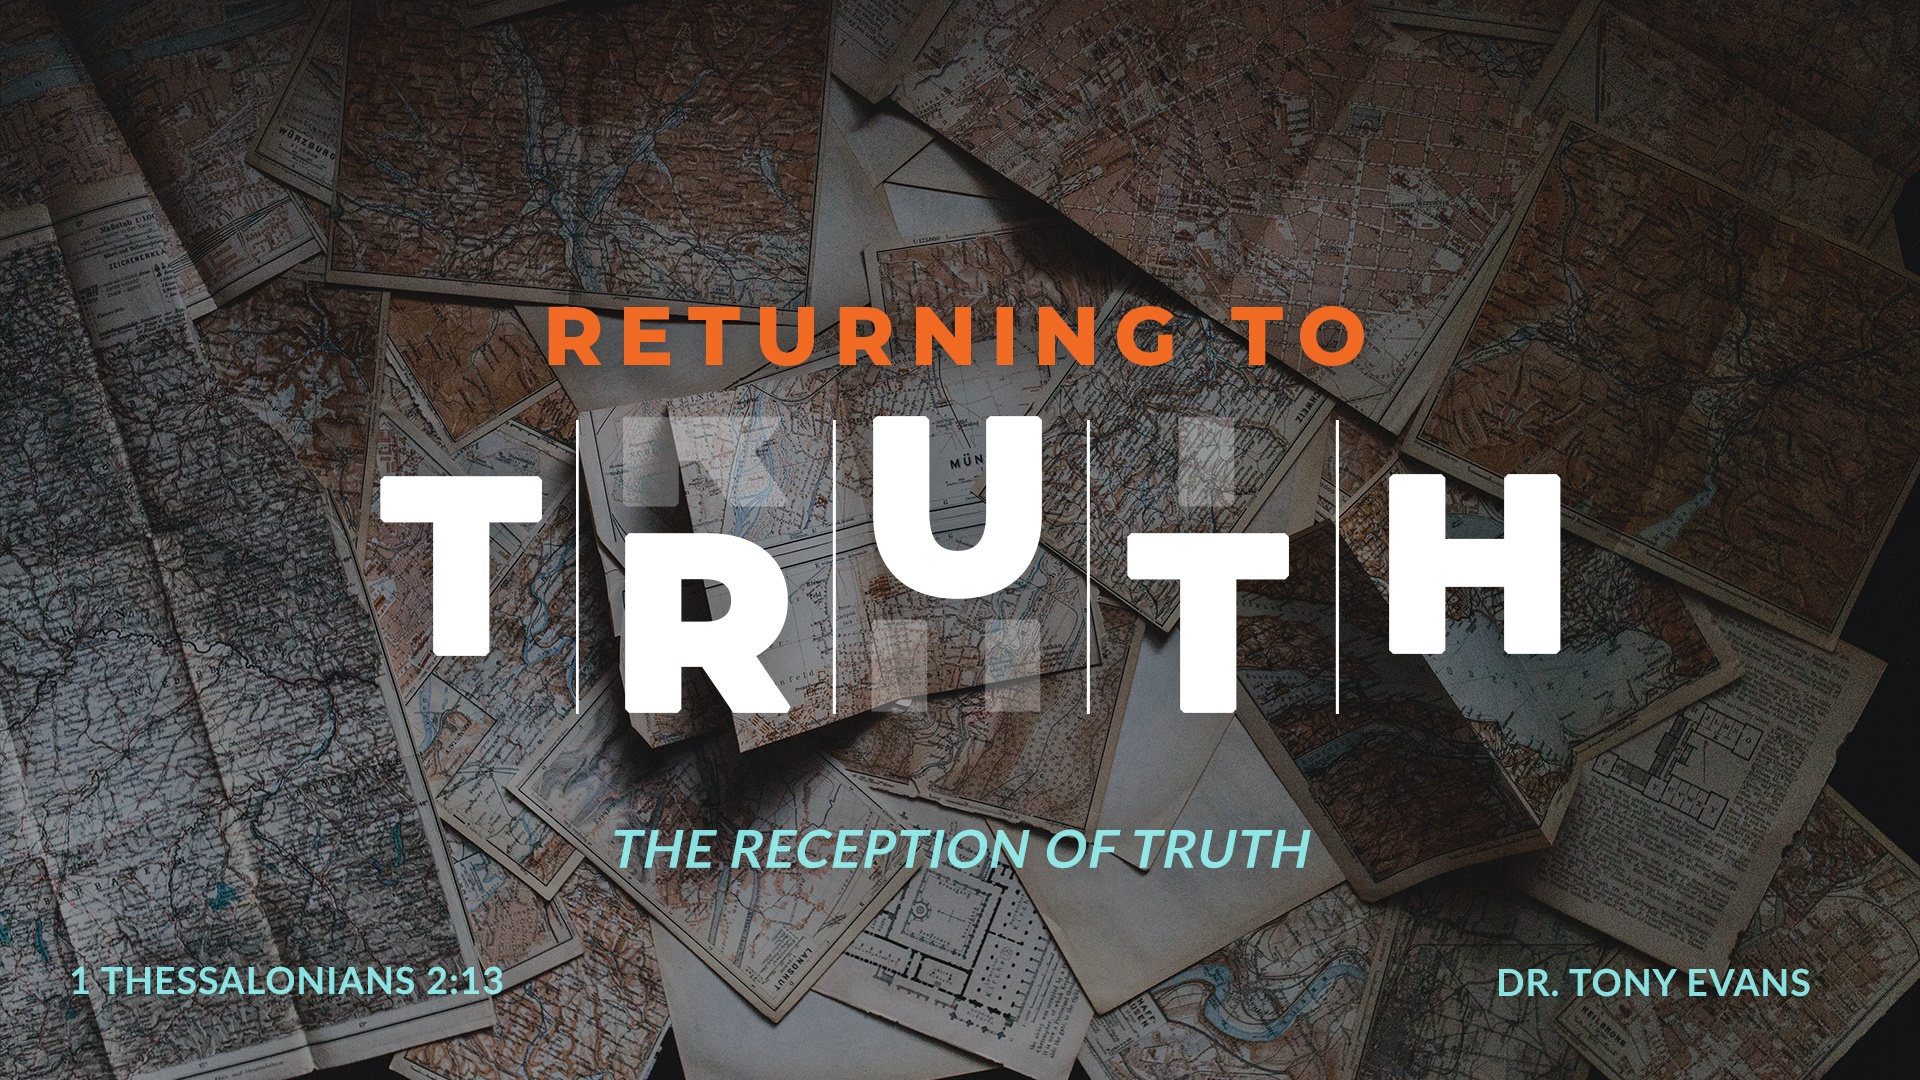 Returning to Truth: The Reception of Truth by Dr. Tony Evans